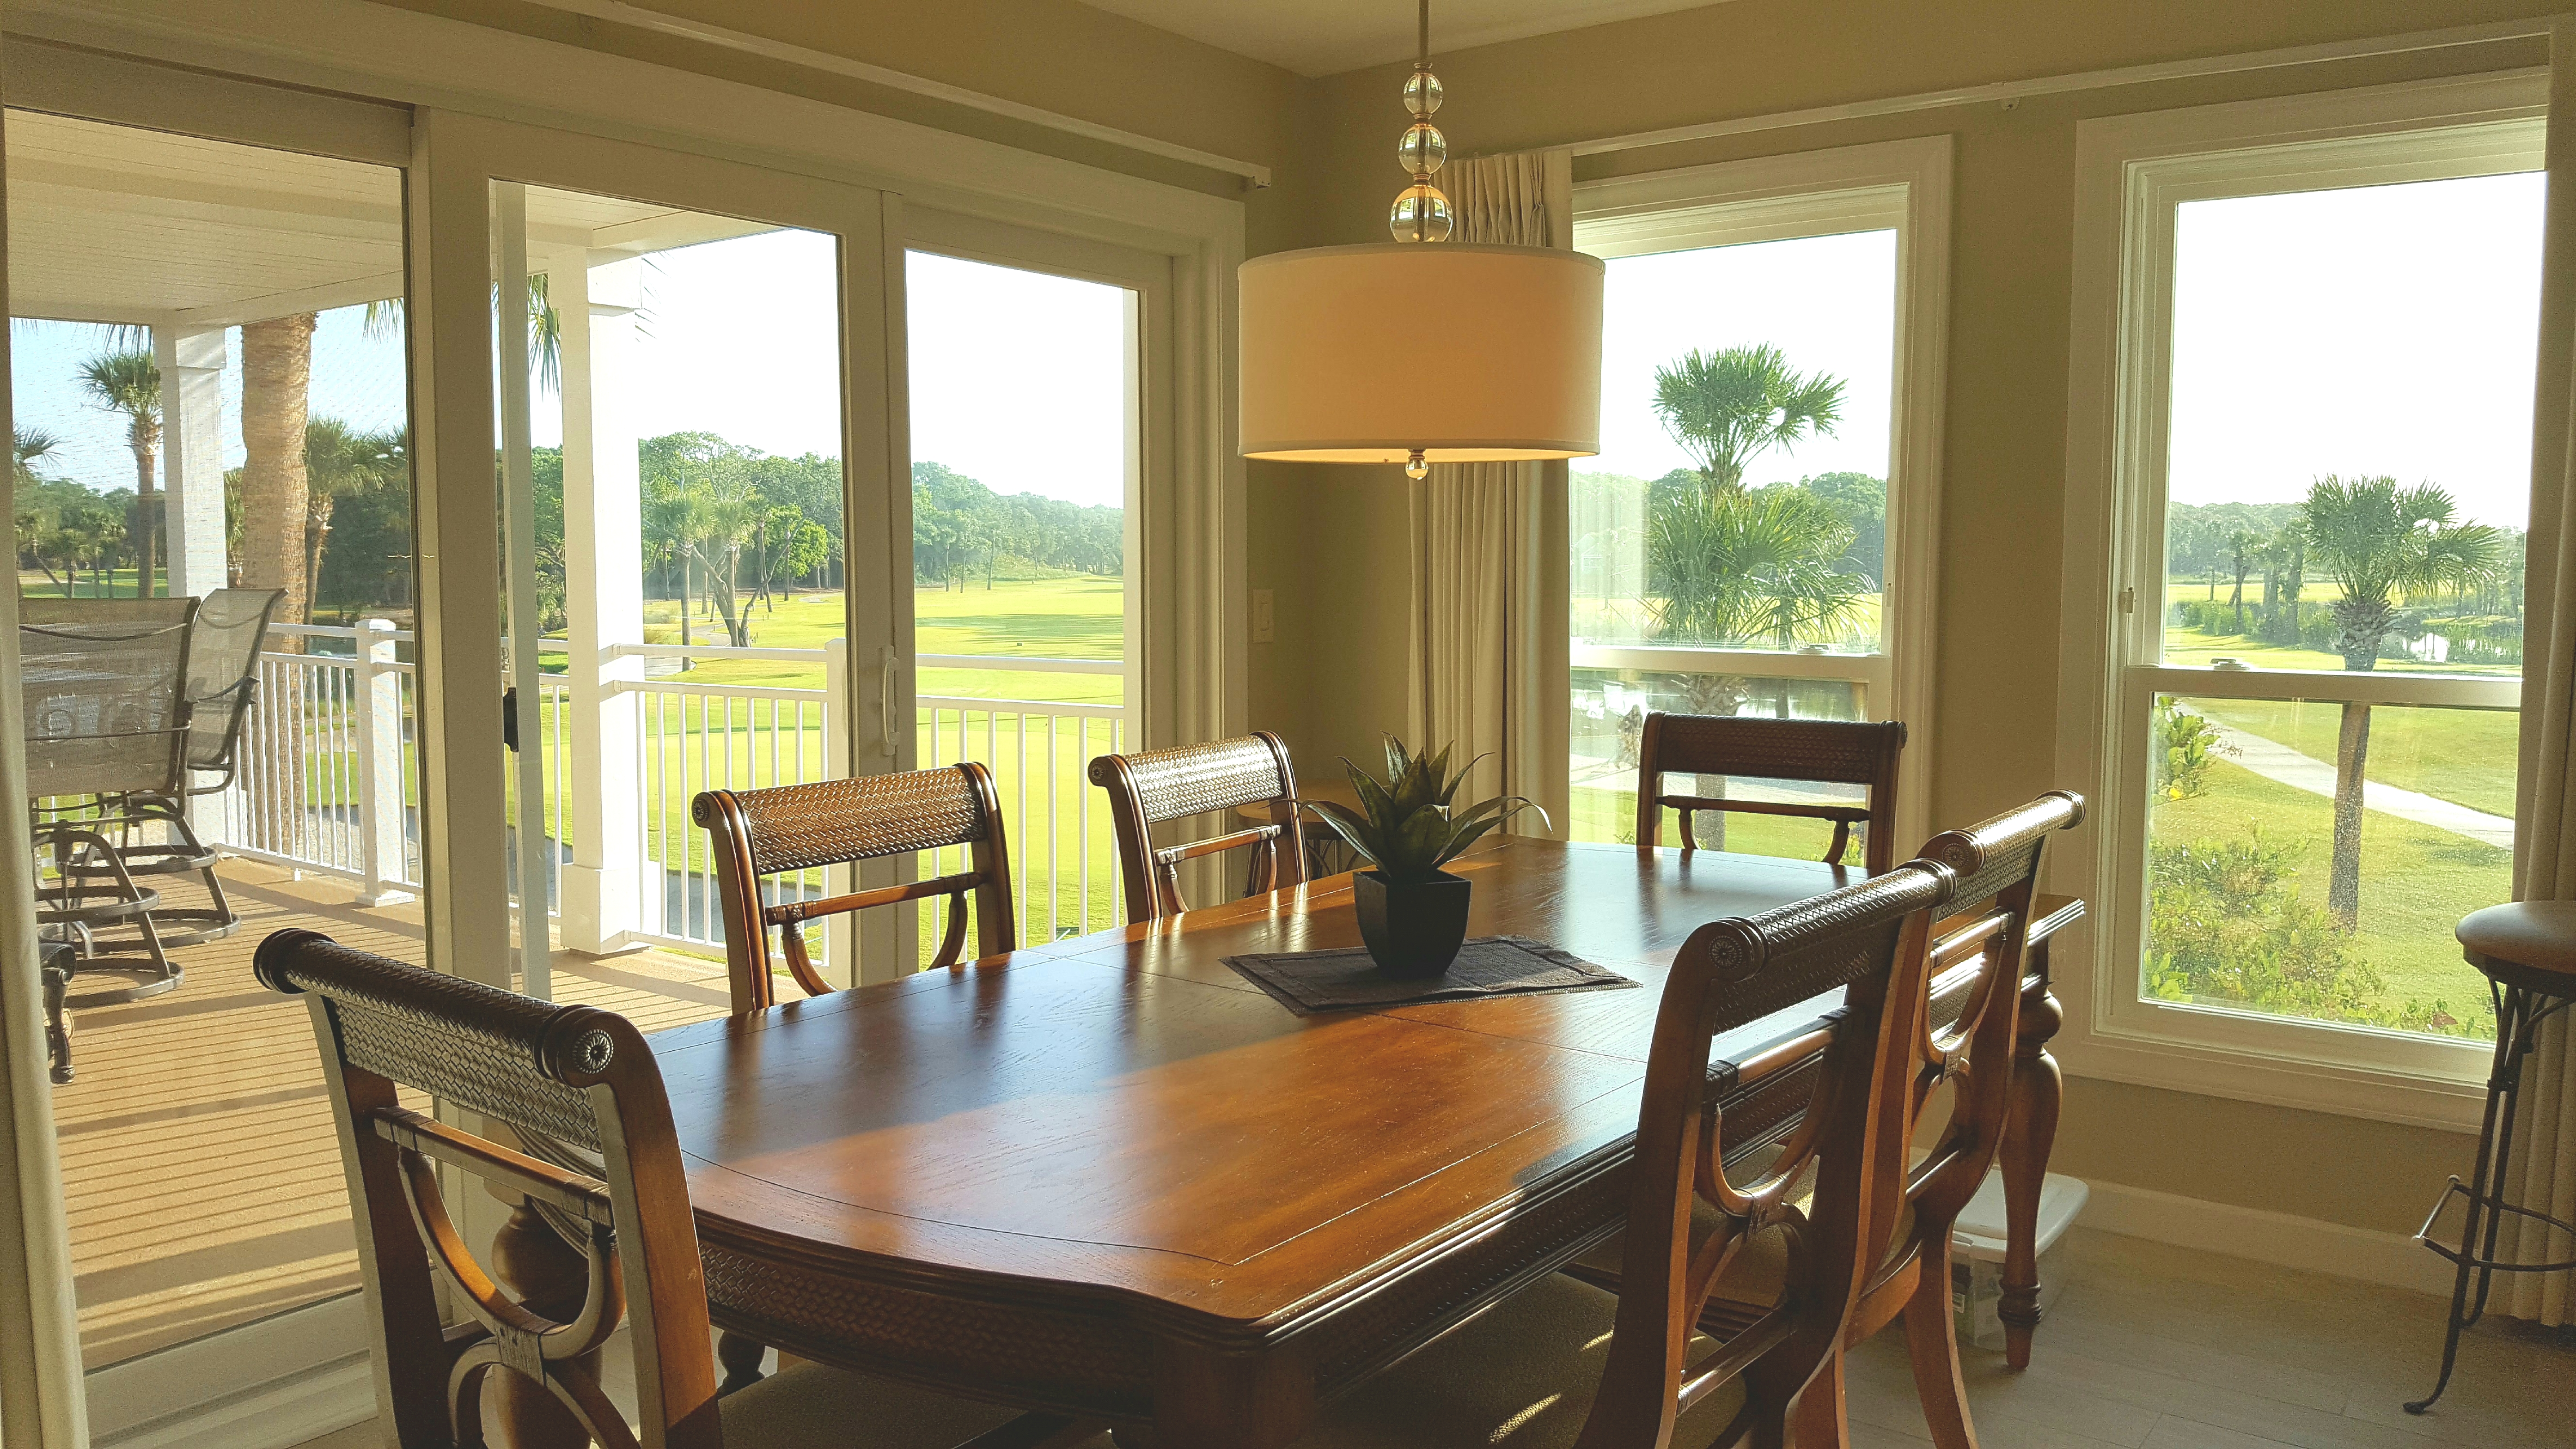 Dining table/chairs & down light pendant; breathtaking golf course panorama through windows and sliding door.